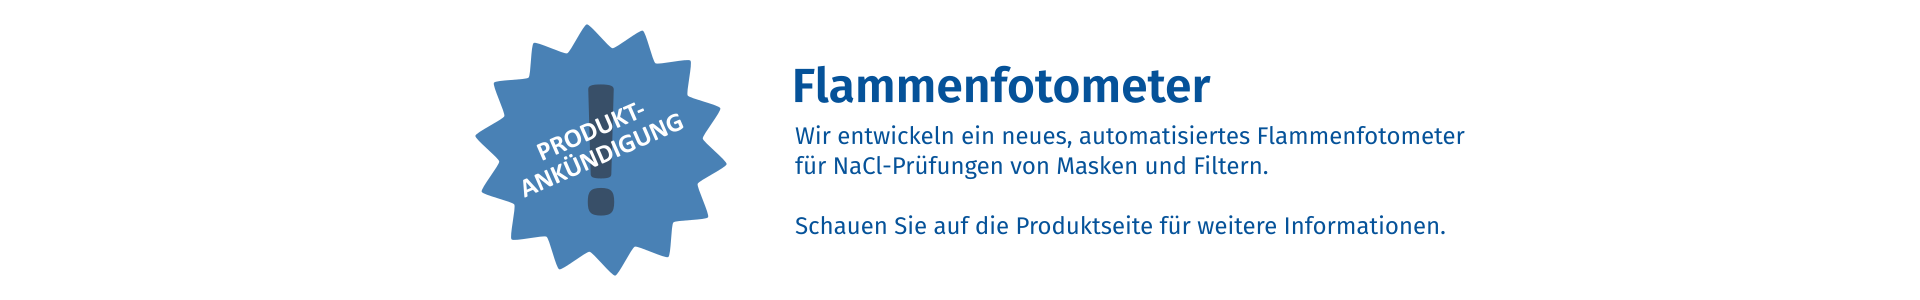 20201107_Slider_Flammfotometer_DE